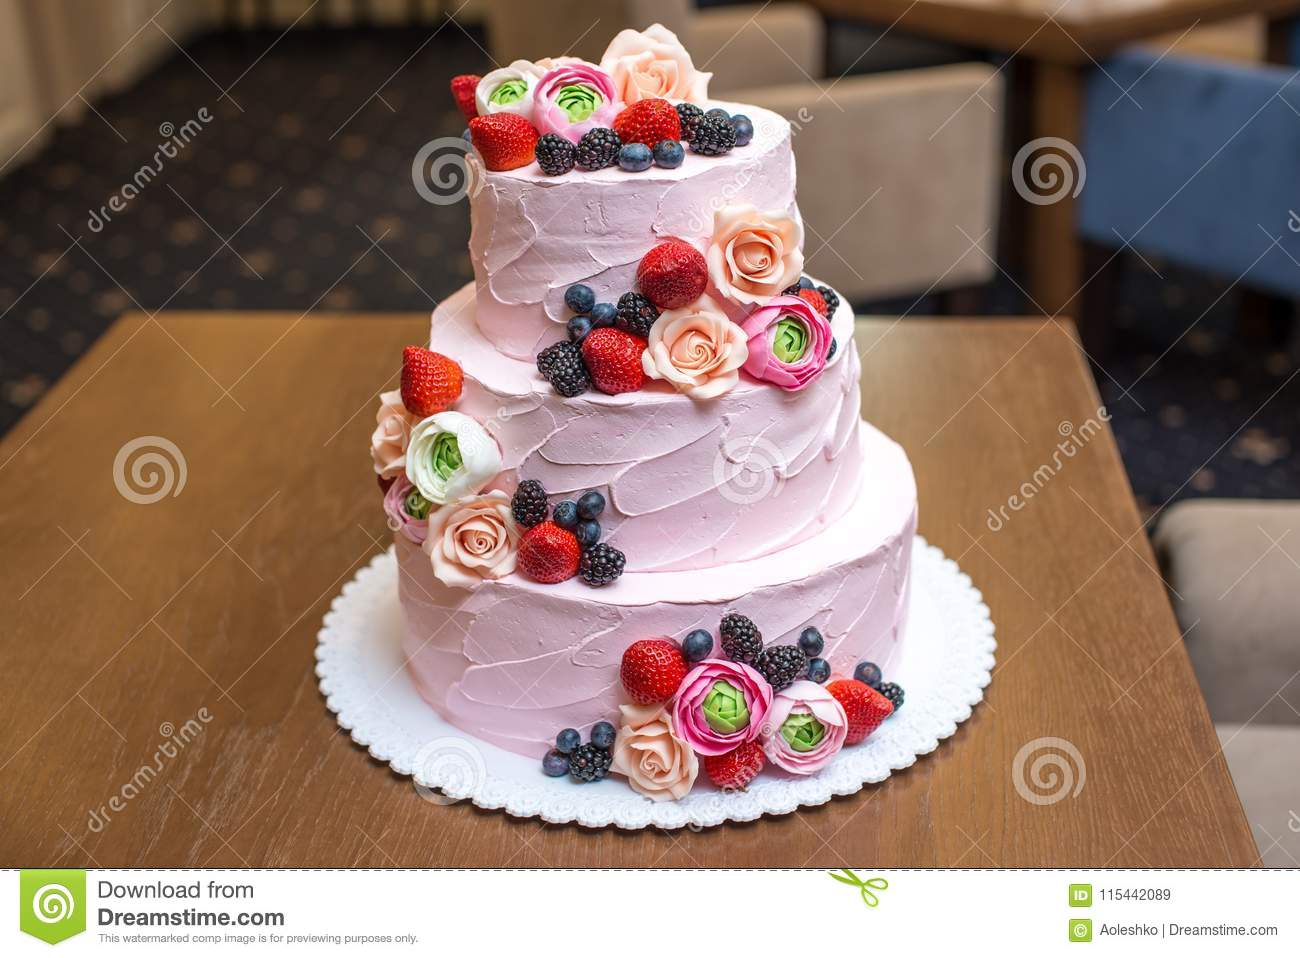 Three Tiered Pink Wedding Cake Decorated With Berries And Flowers